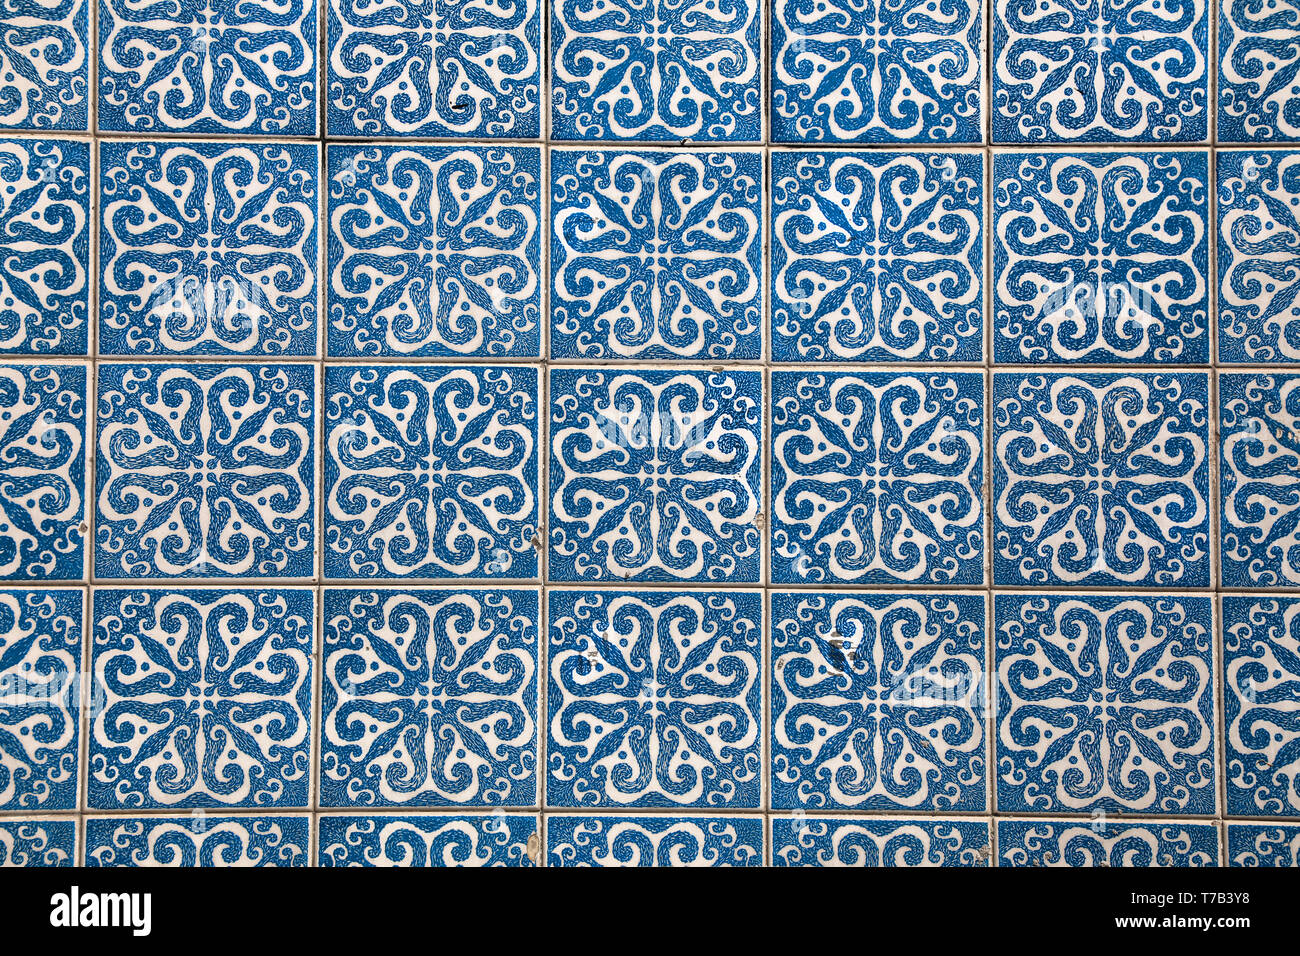 Patterned Tiles Stock Photos & Patterned Tiles Stock Images